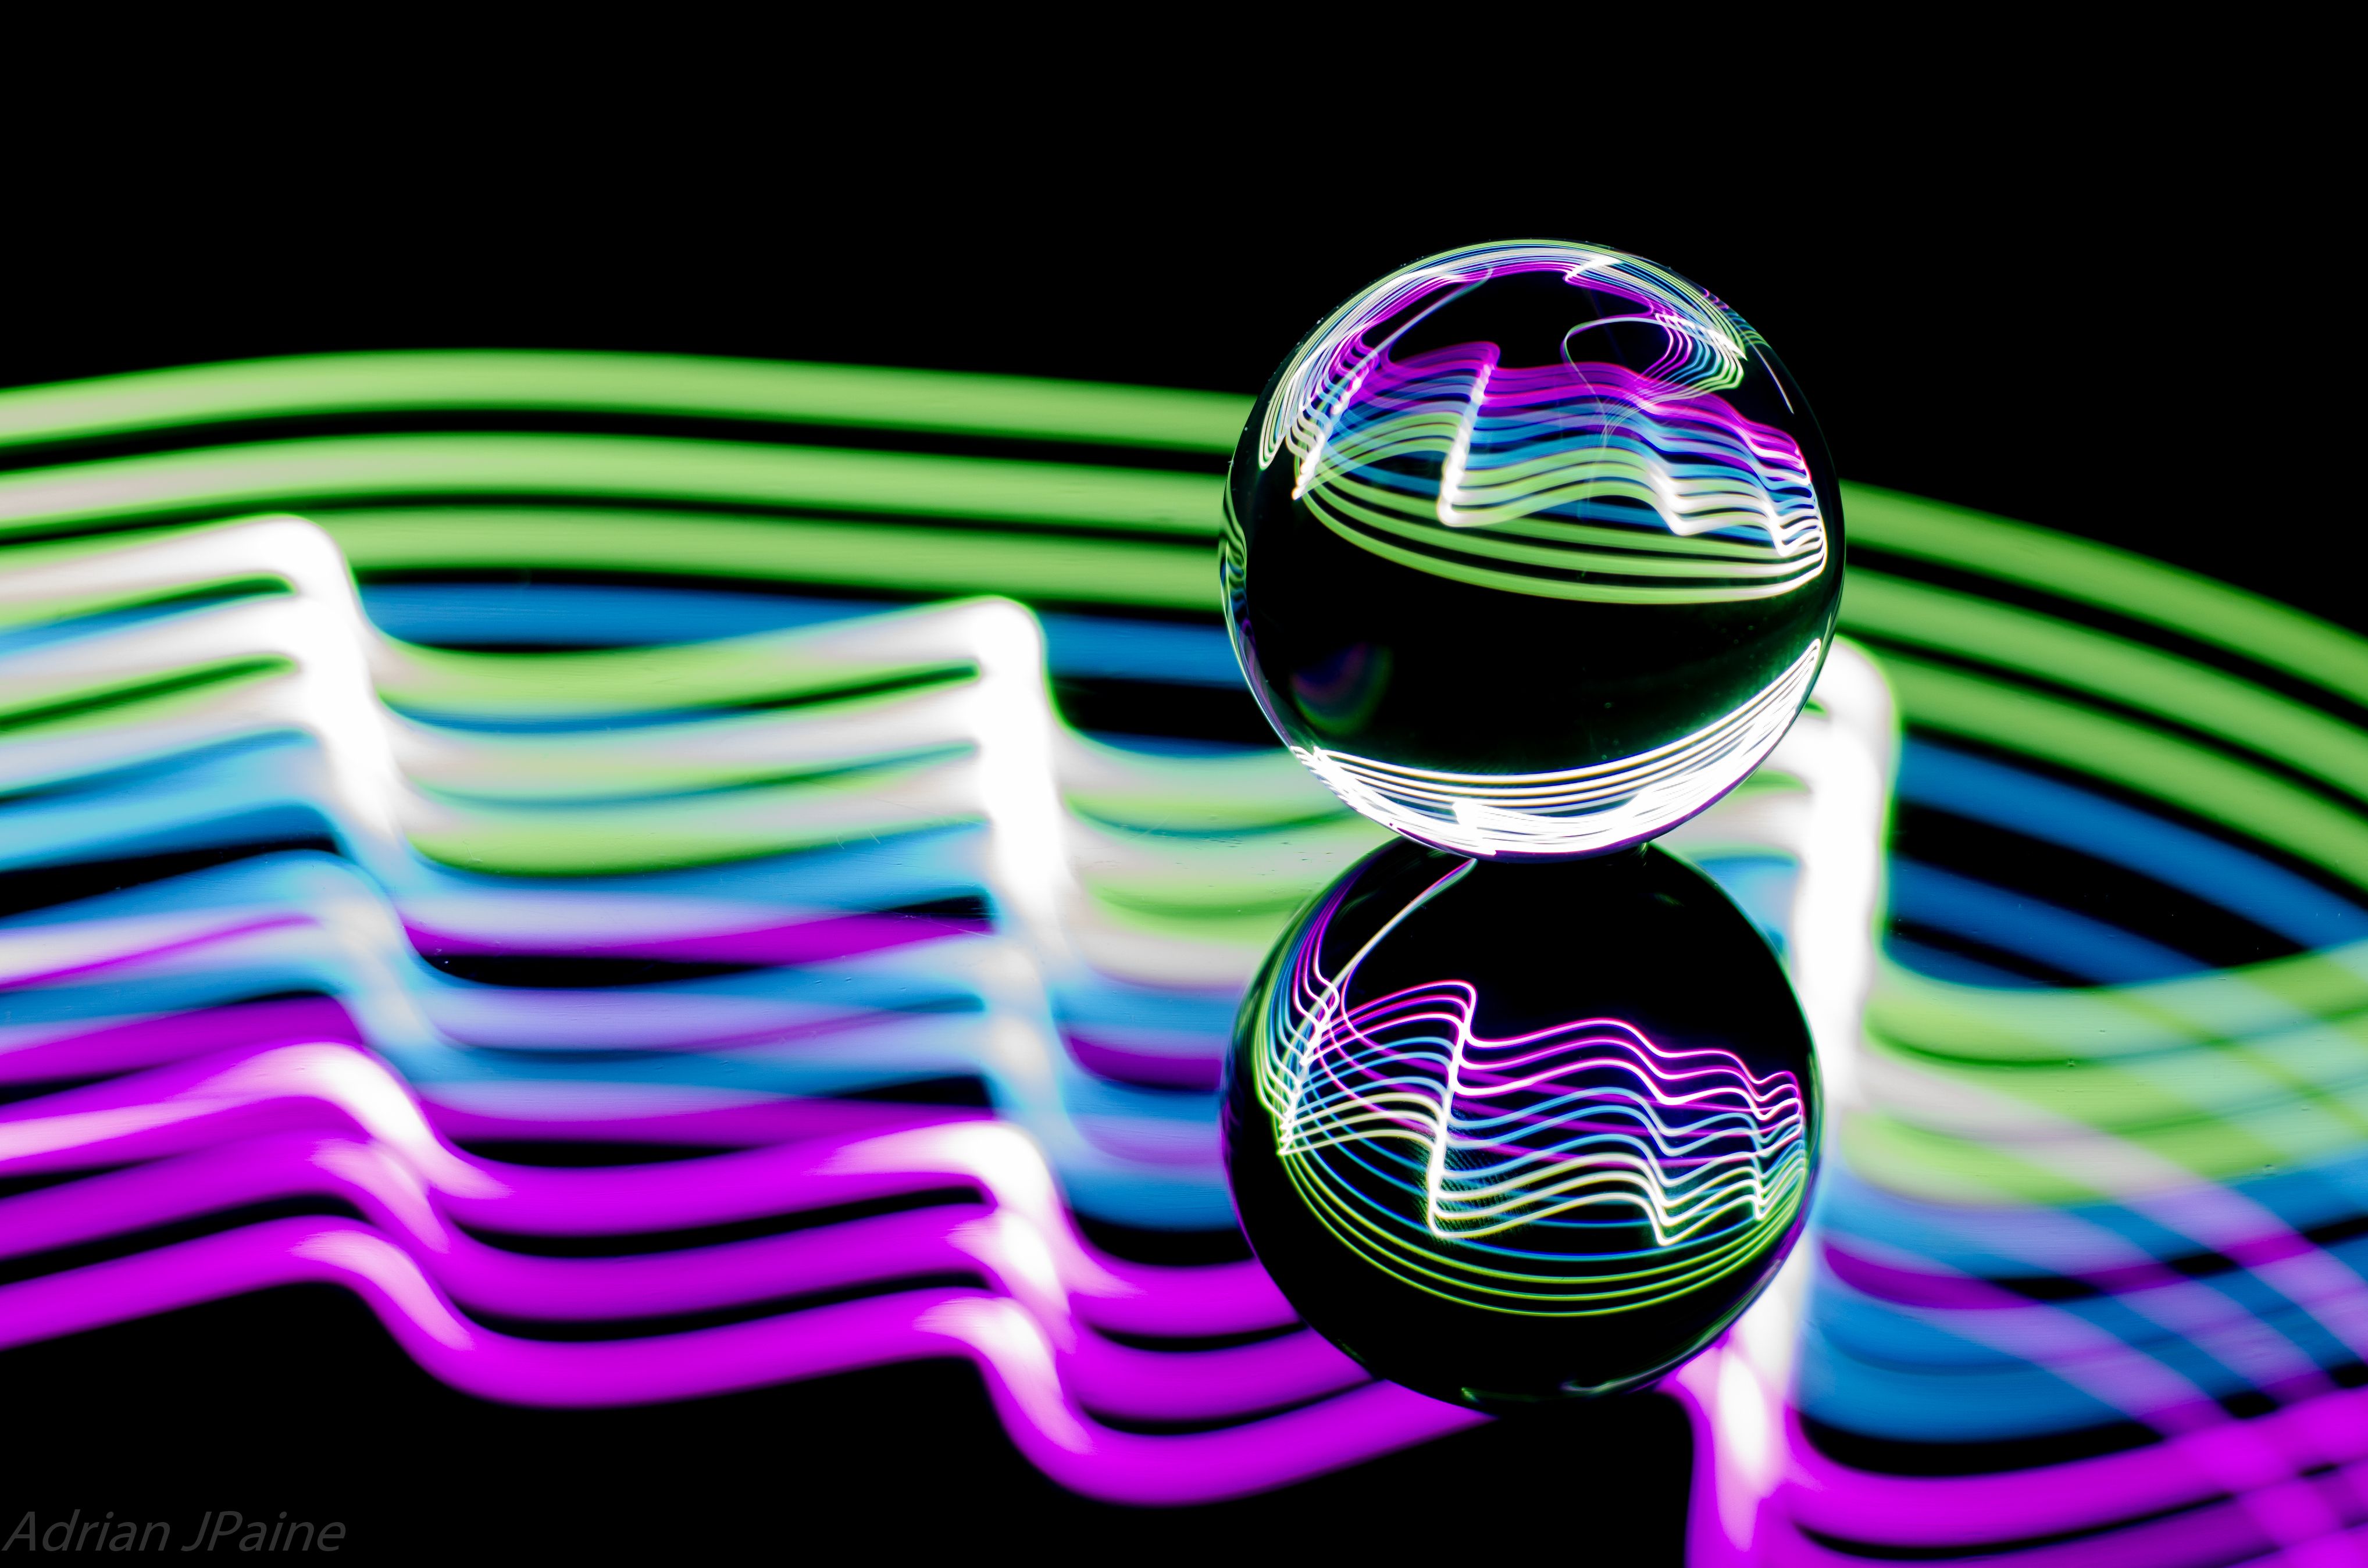 139344 download wallpaper Abstract, Ball, Glow, Reflection screensavers and pictures for free